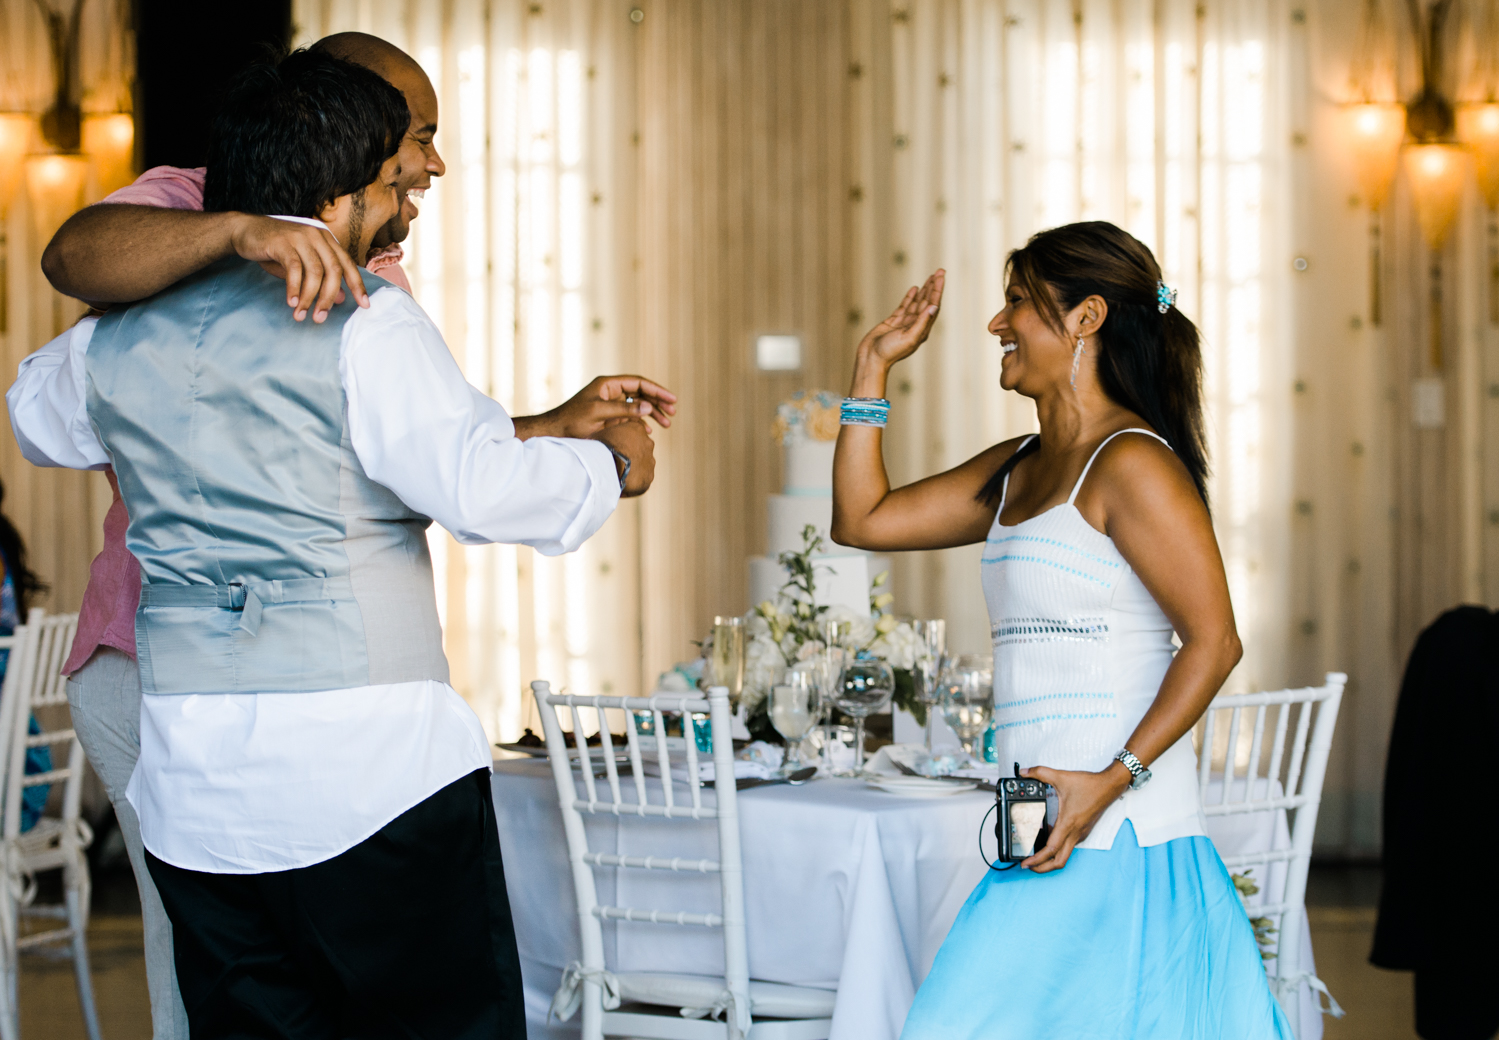 chris-nachtwey-niantic-connecticut-fun-candid-wedding-photographers.jpg